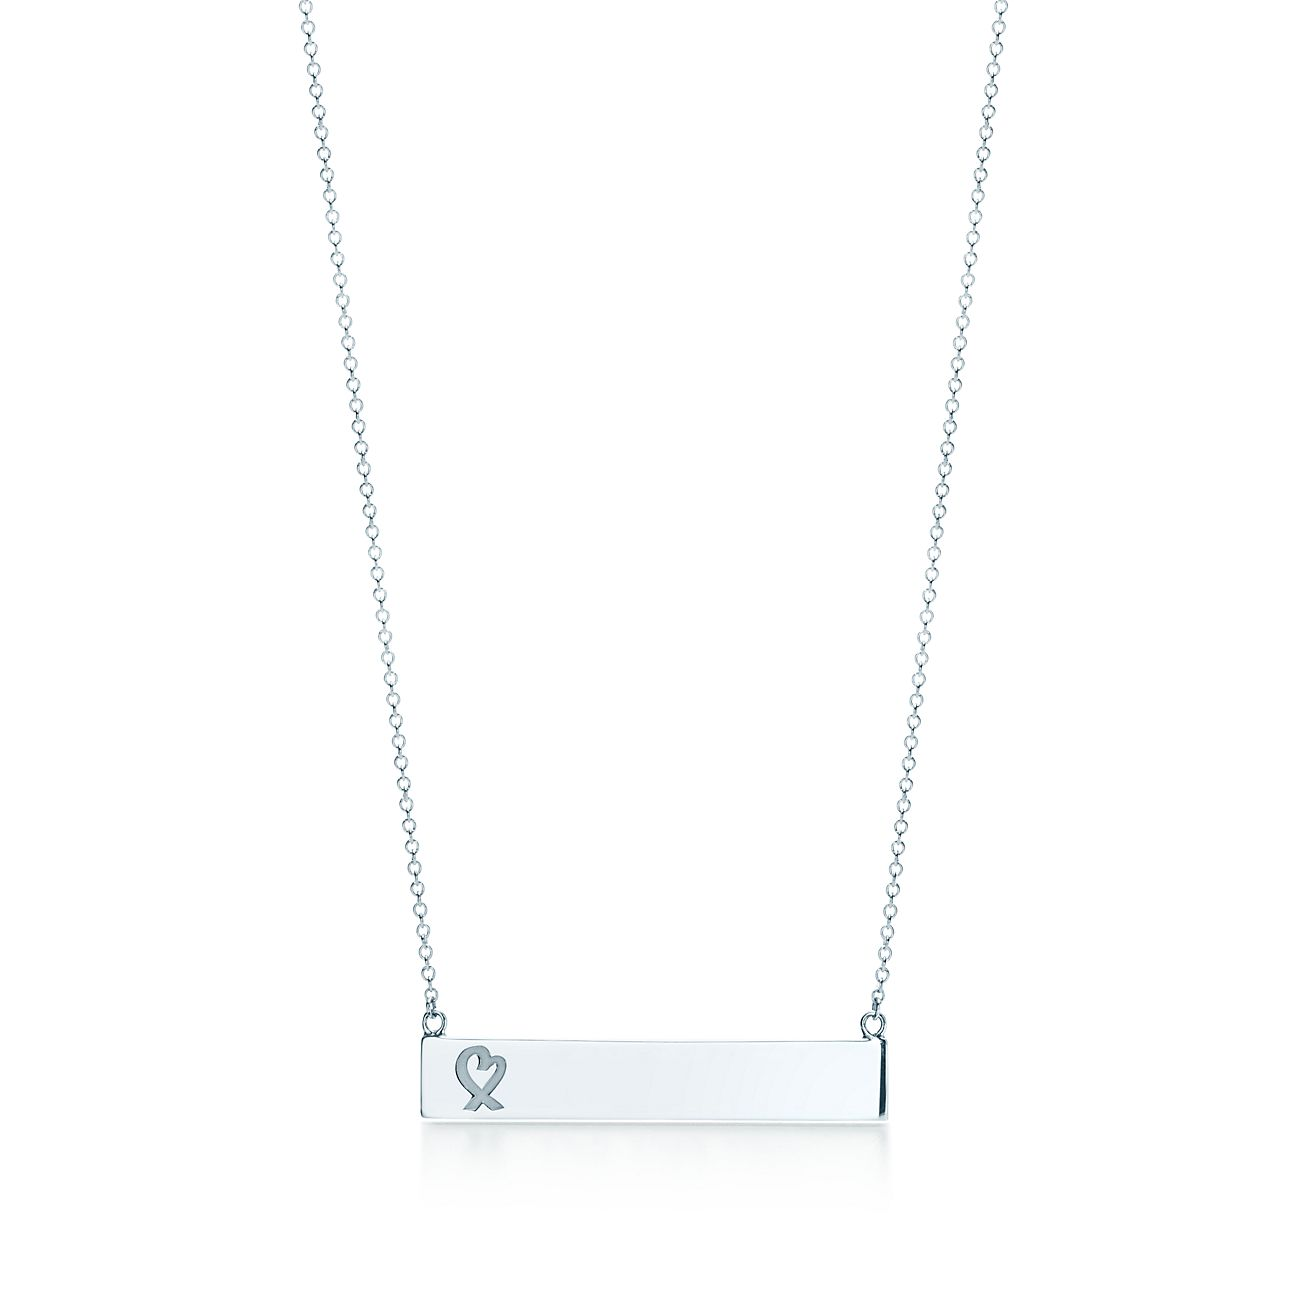 Paloma picasso loving heart bar pendant in sterling silver paloma picassoloving heart bar pendant mozeypictures Images